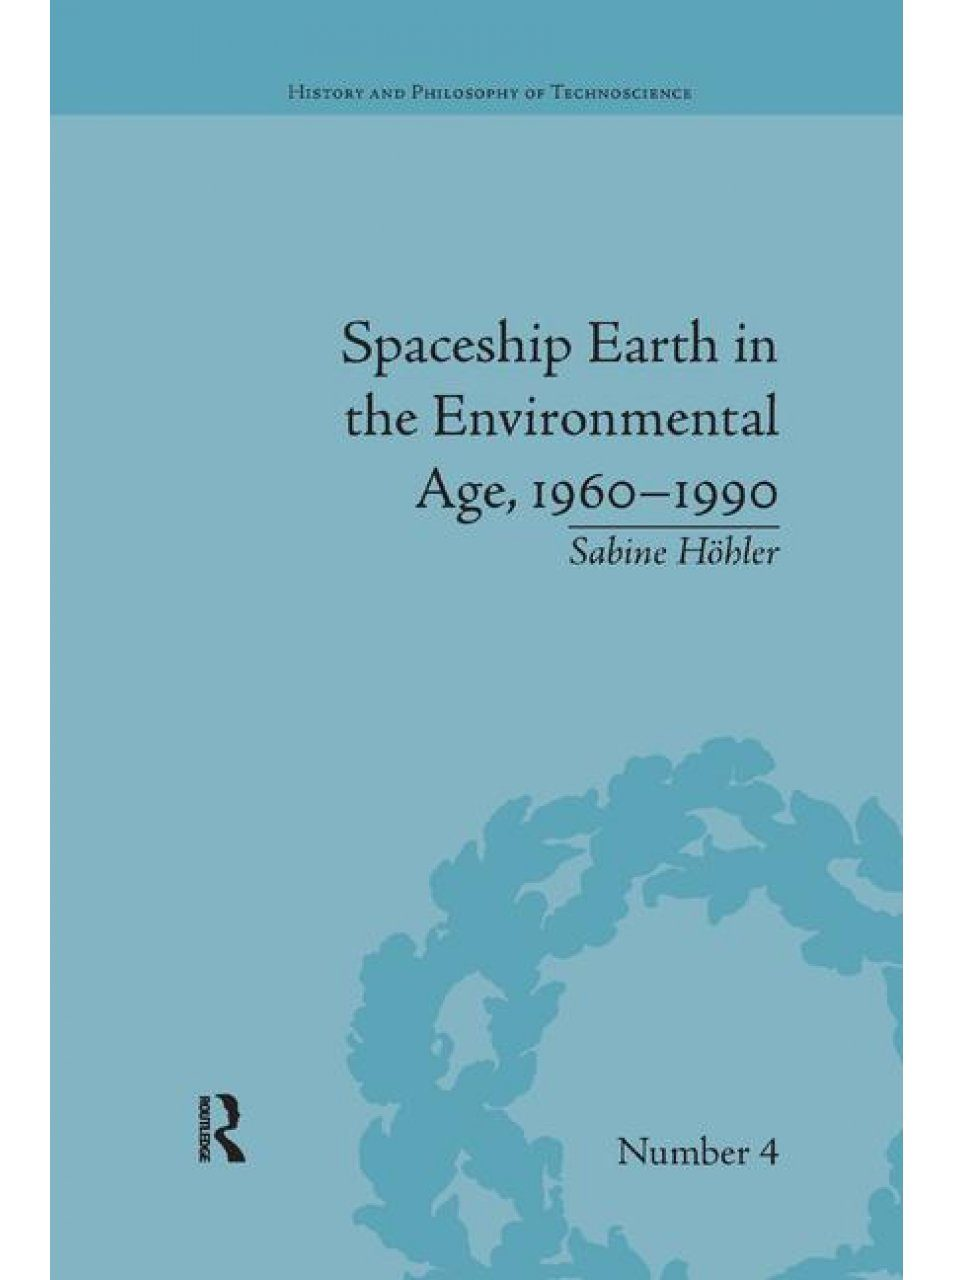 Spaceship Earth in the Environmental Age, 1960-1990